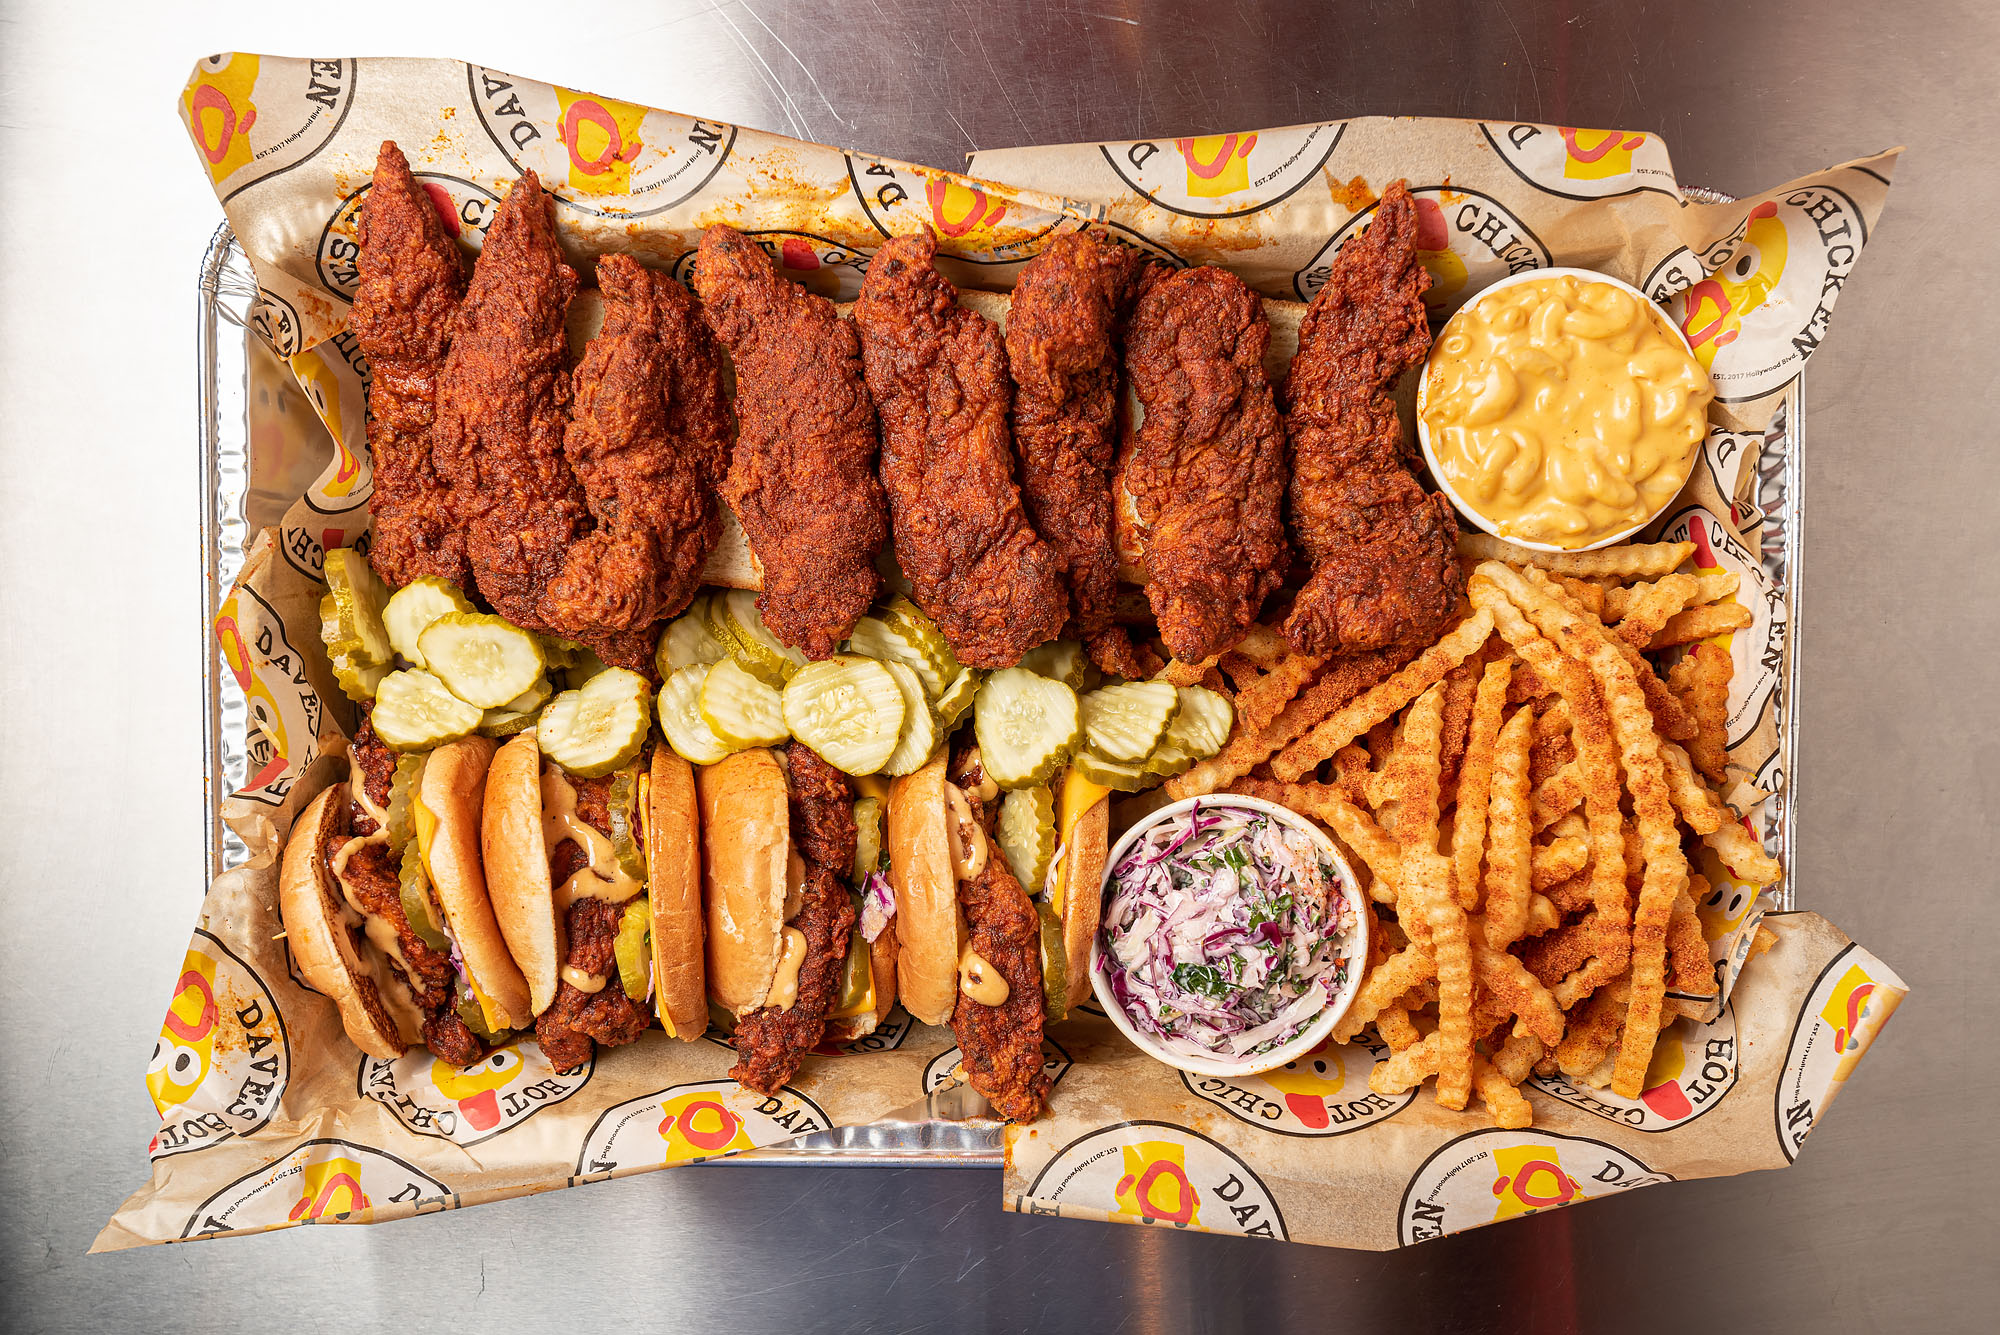 New LA Food Festival Focuses on That Beloved Bar Staple, the Chicken Tender